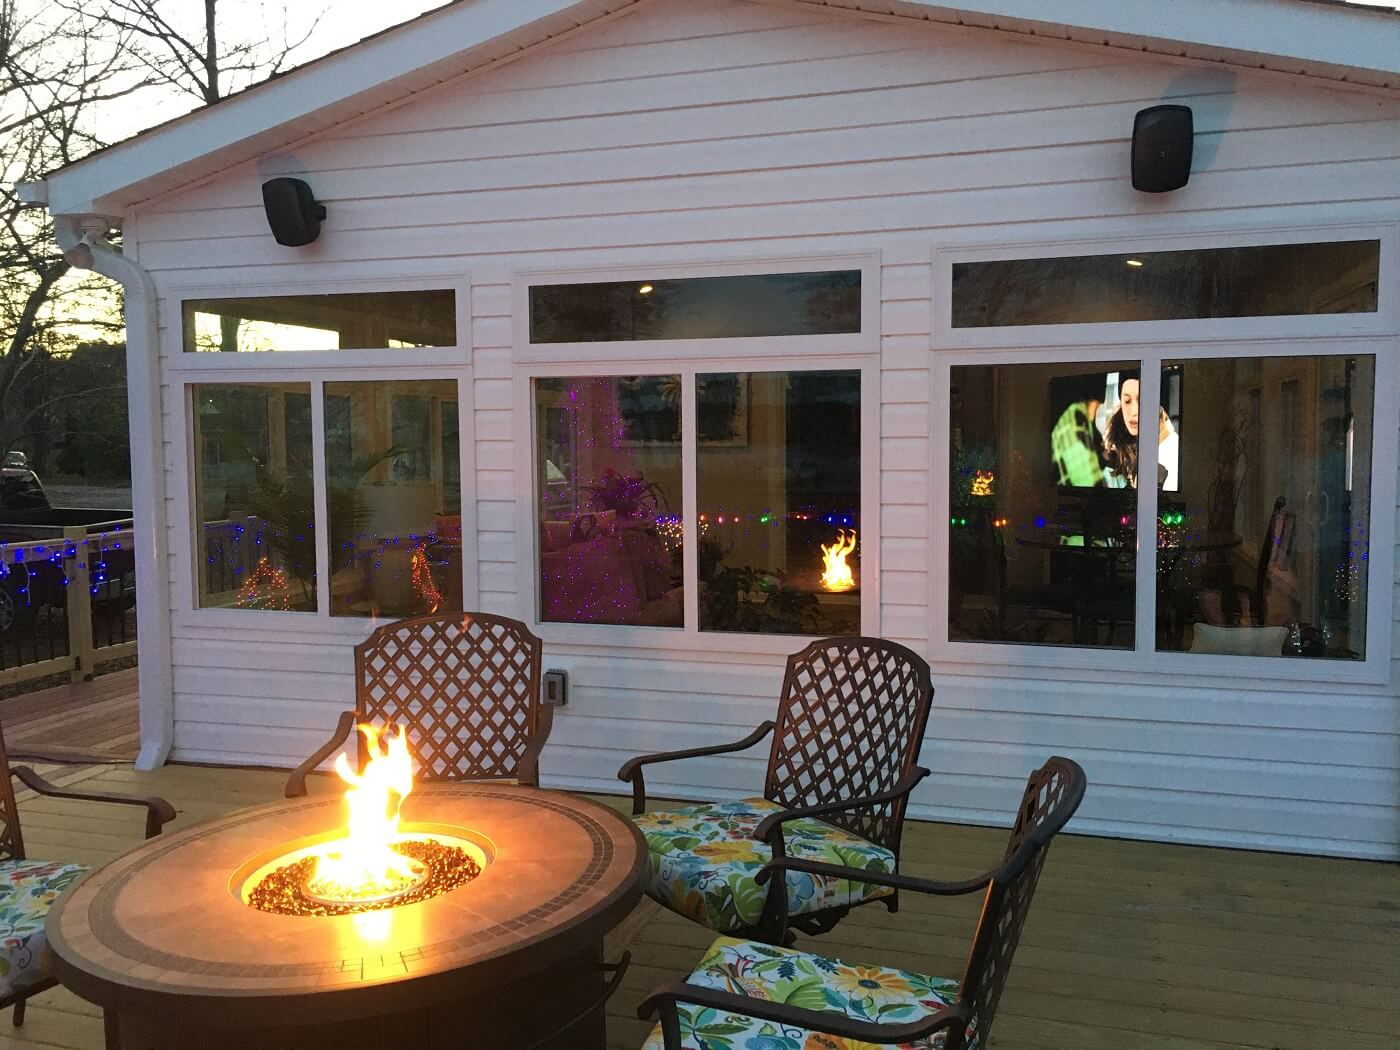 Sunroom and deck with fire pit